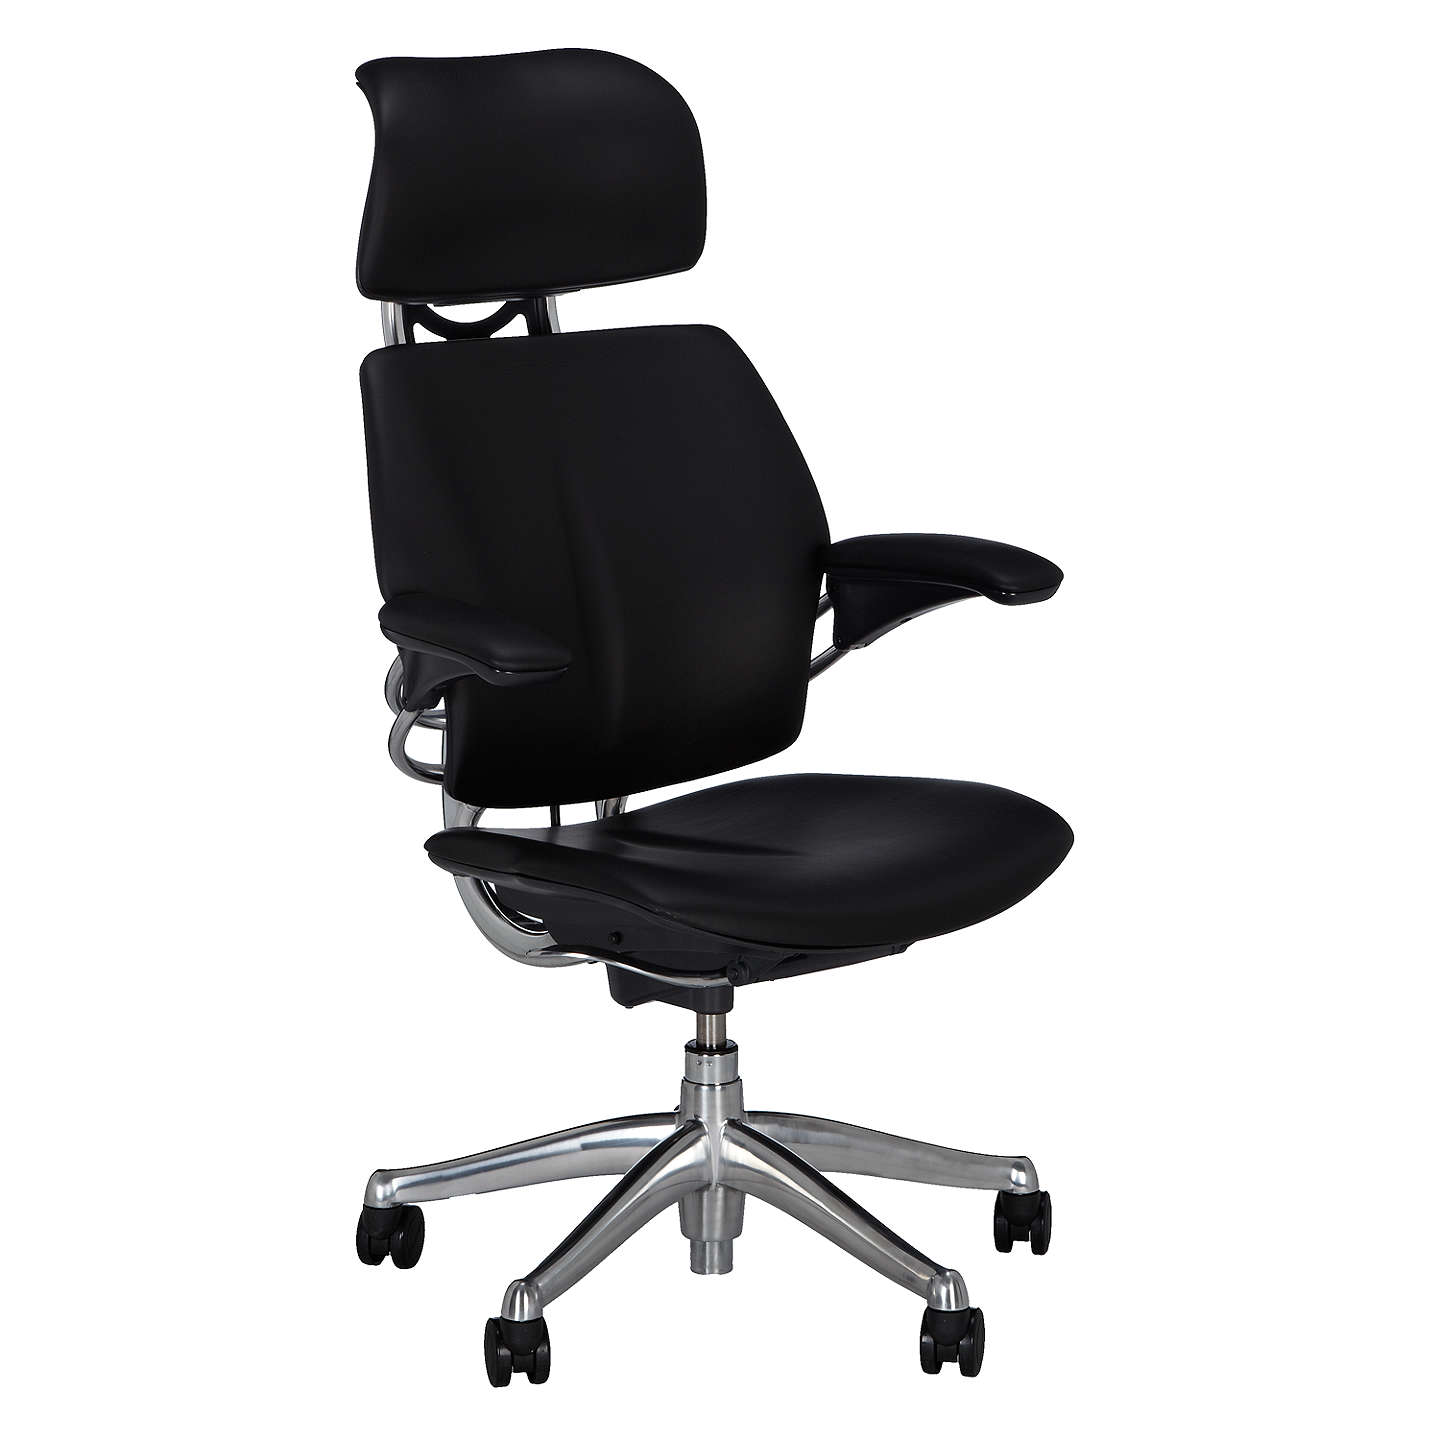 humanscale freedom office chair with headrest at john lewis